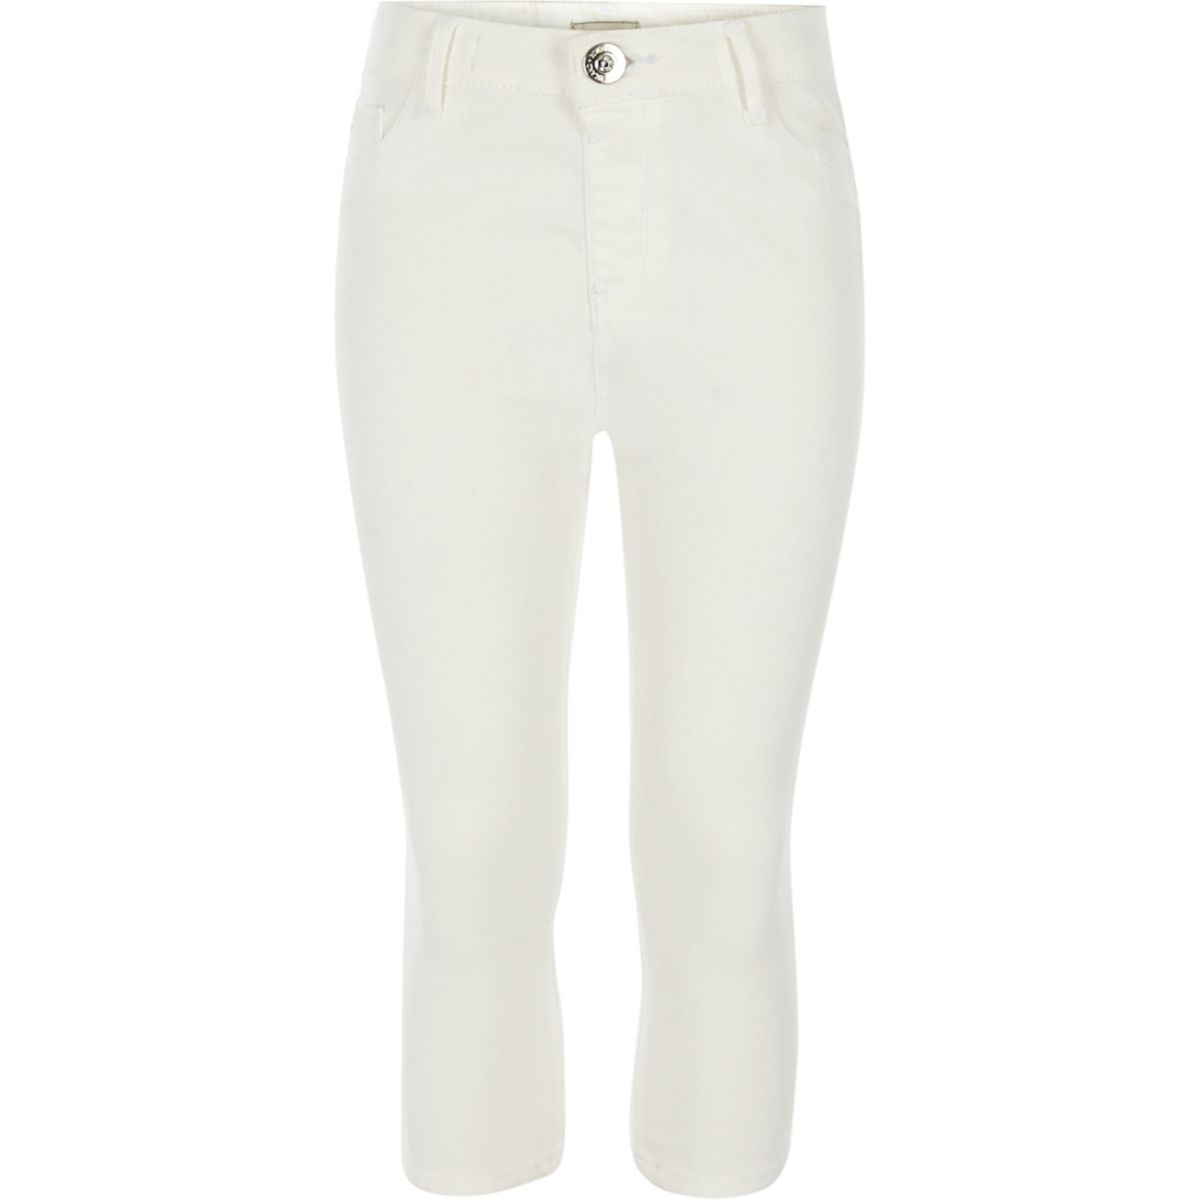 Molly – Jean blanc taille standard court pour fille